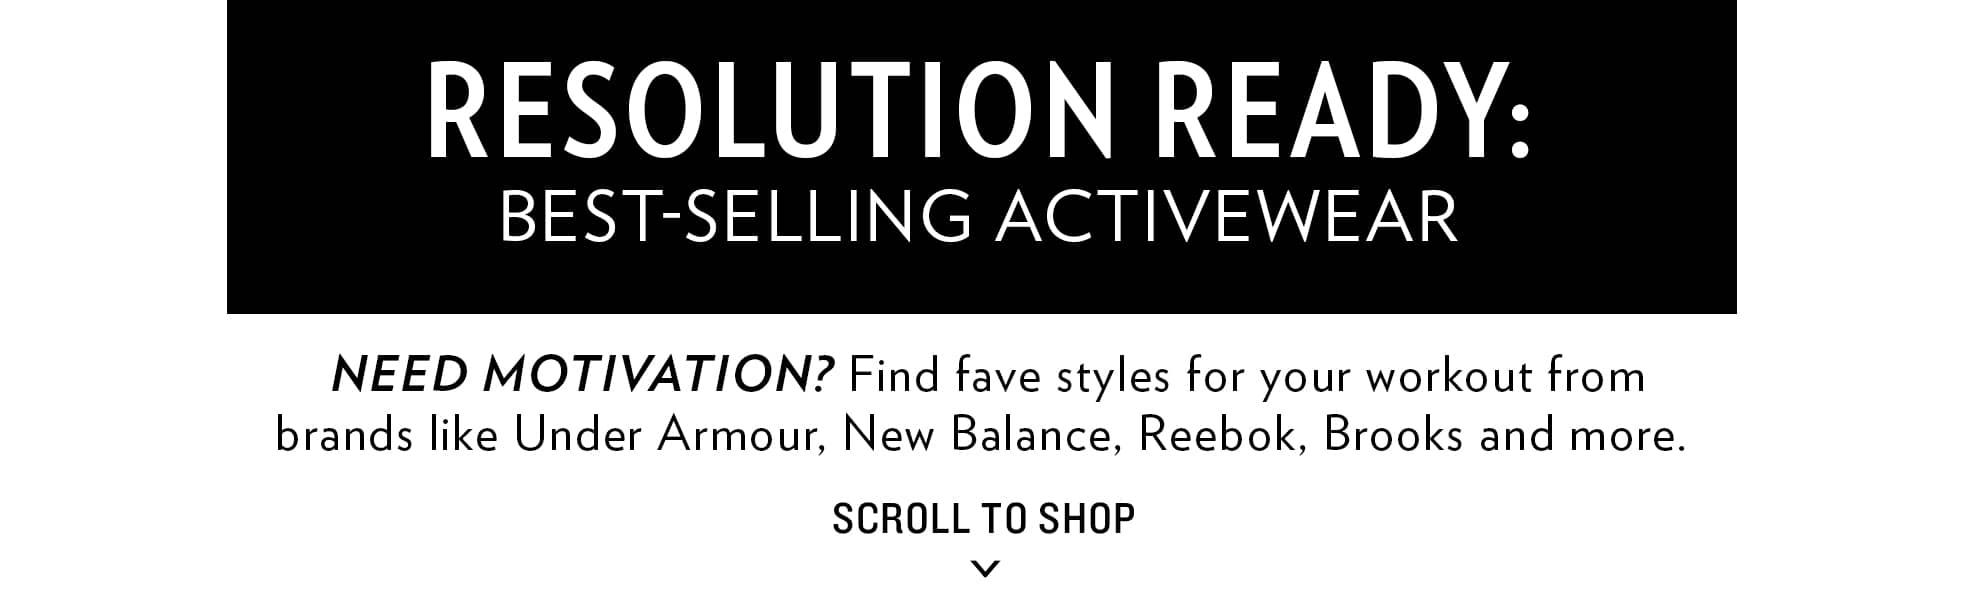 Resolution Ready Lookbook